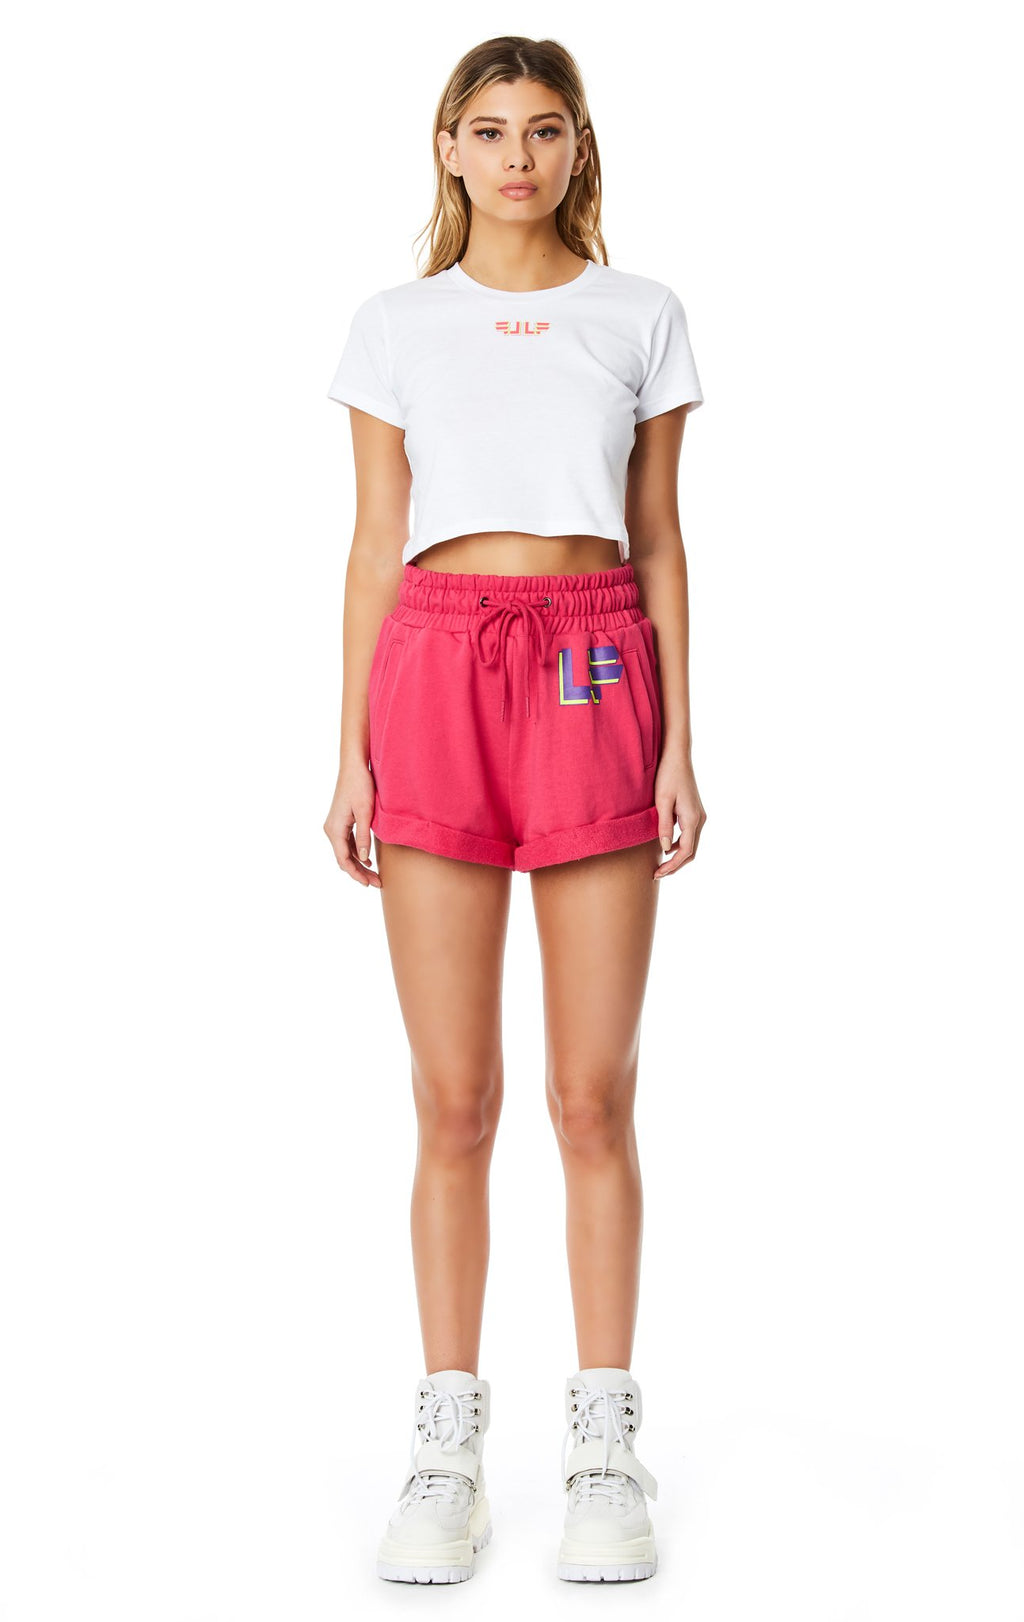 LF THE BRAND HIGH-RISE SWEAT SHORT FULL BODY FRONT